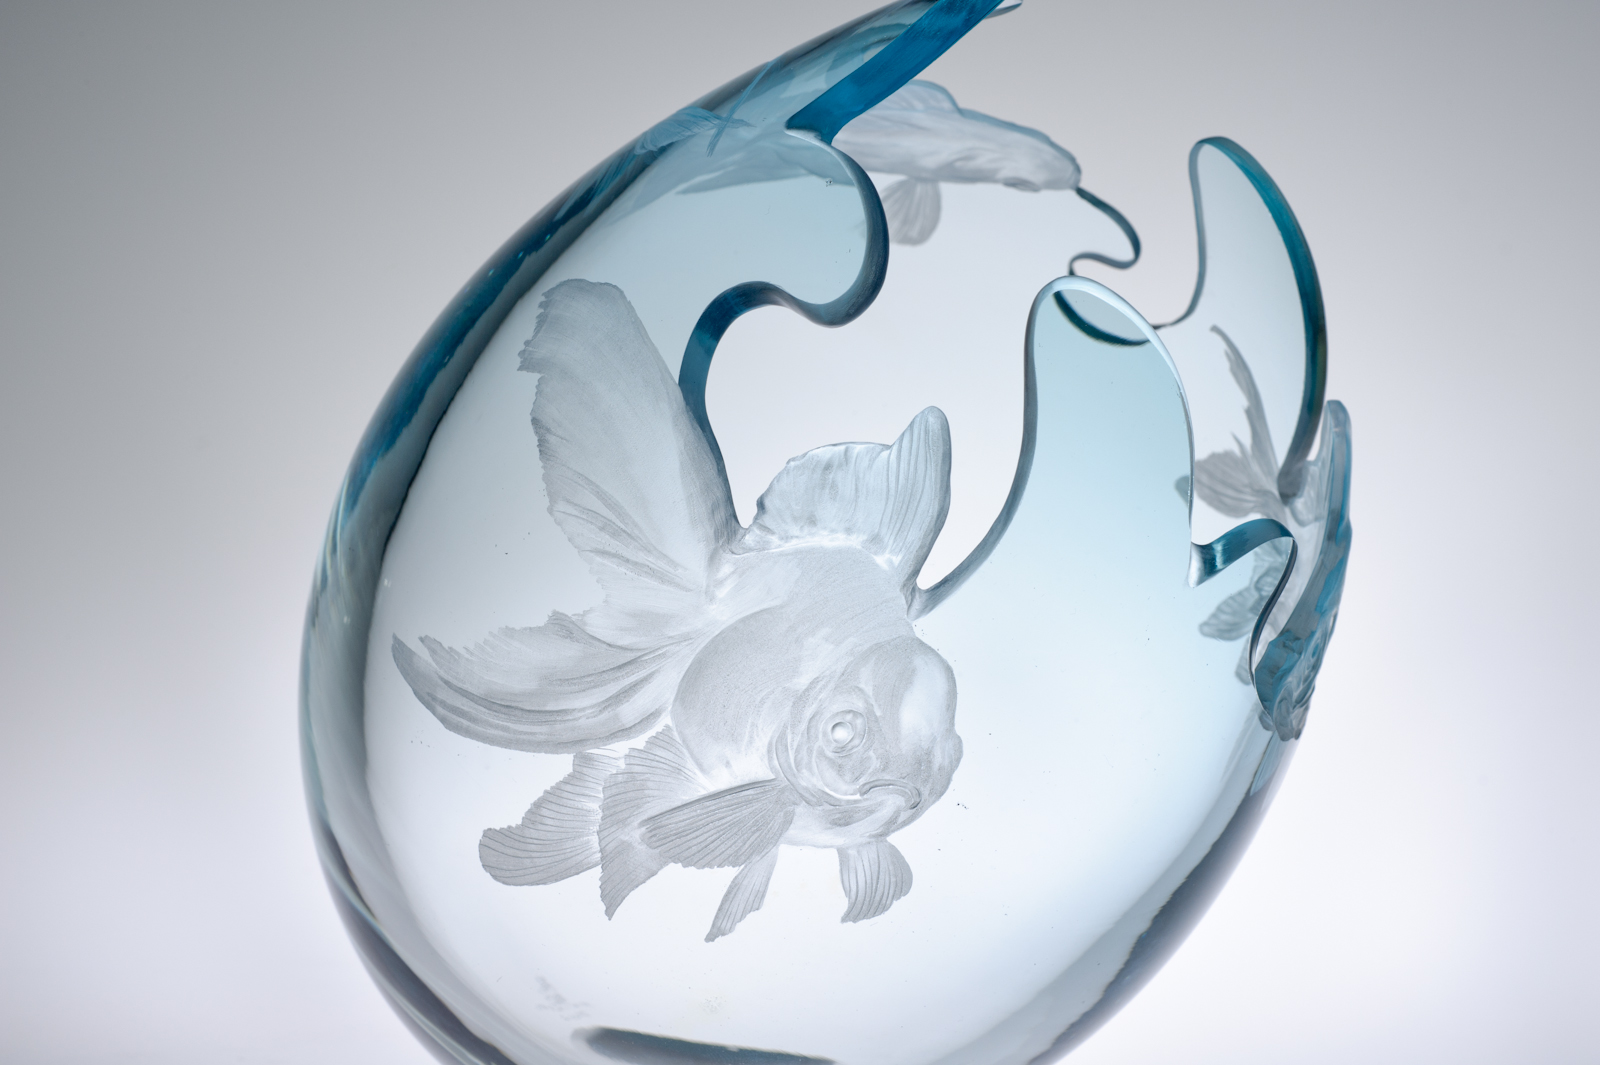 Engraved glass bowl by Miki Kubo. (photo taken by Michael Myers)